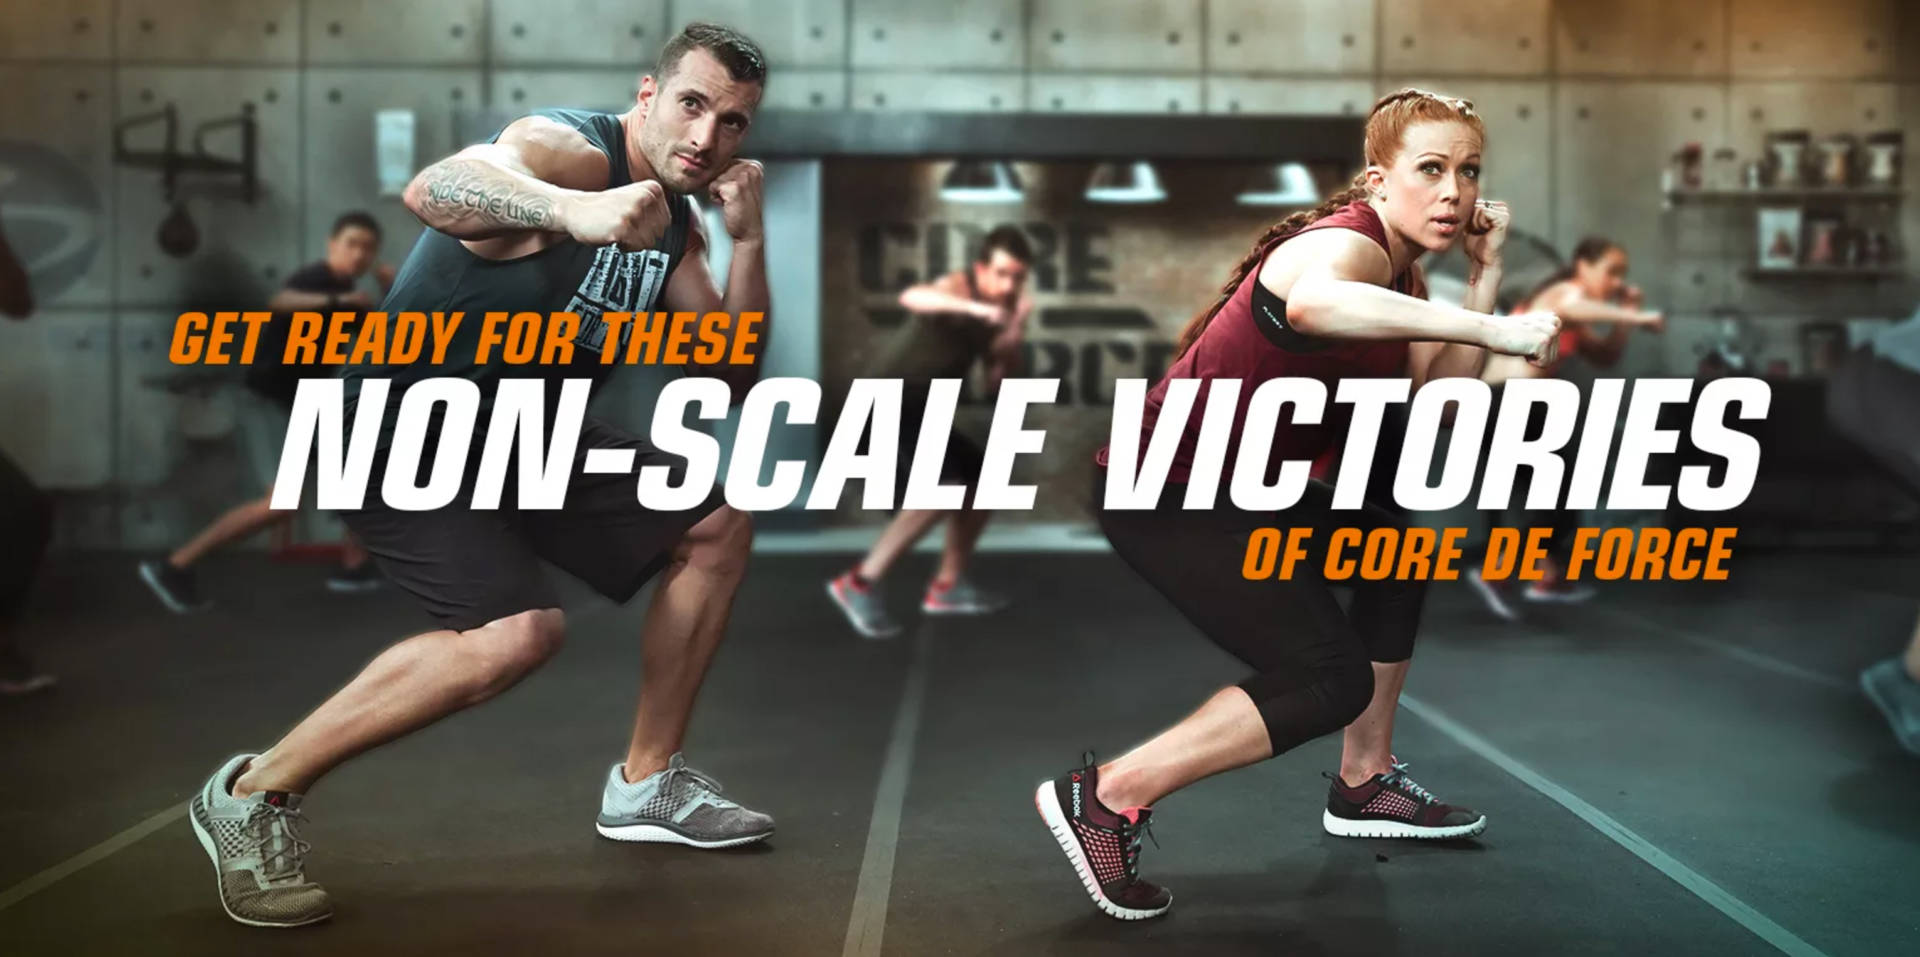 NON scale victories of core de force